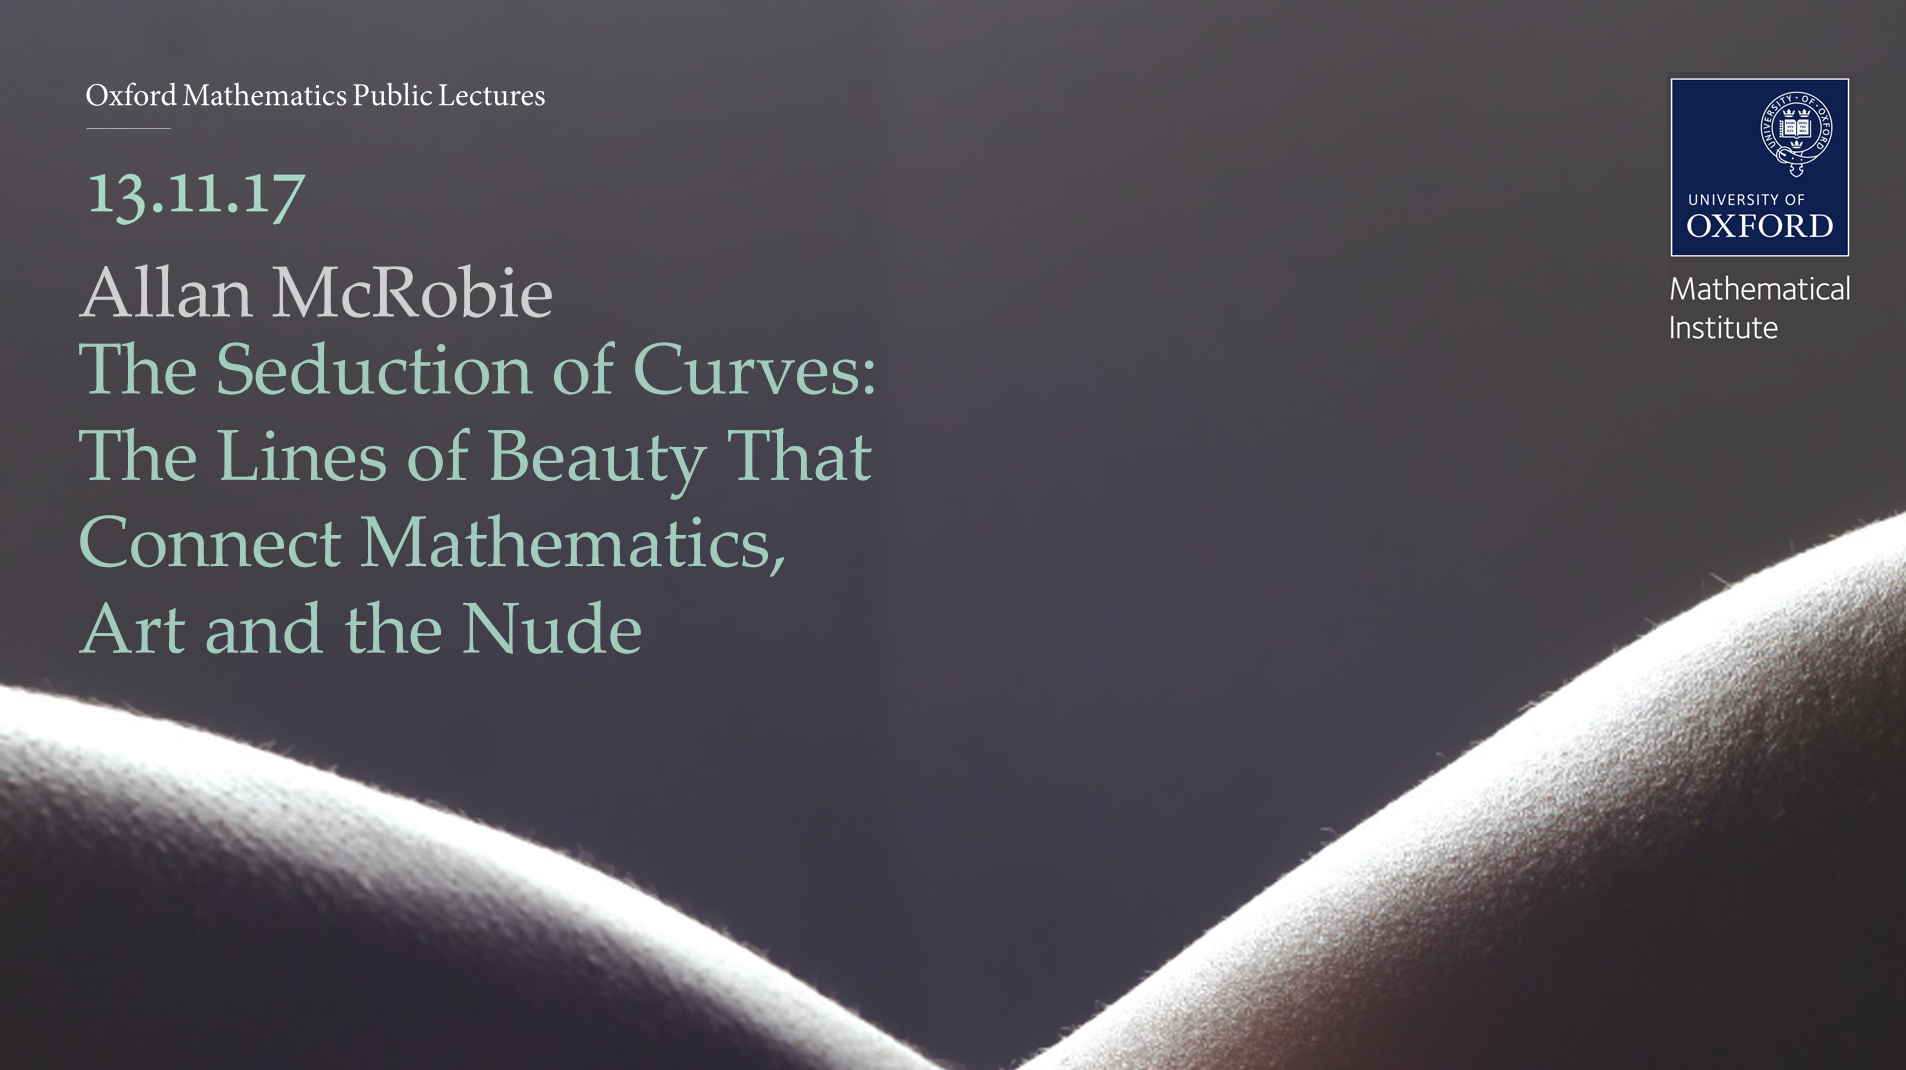 the seduction of curves the lines of beauty that connect mathematics art and the nude